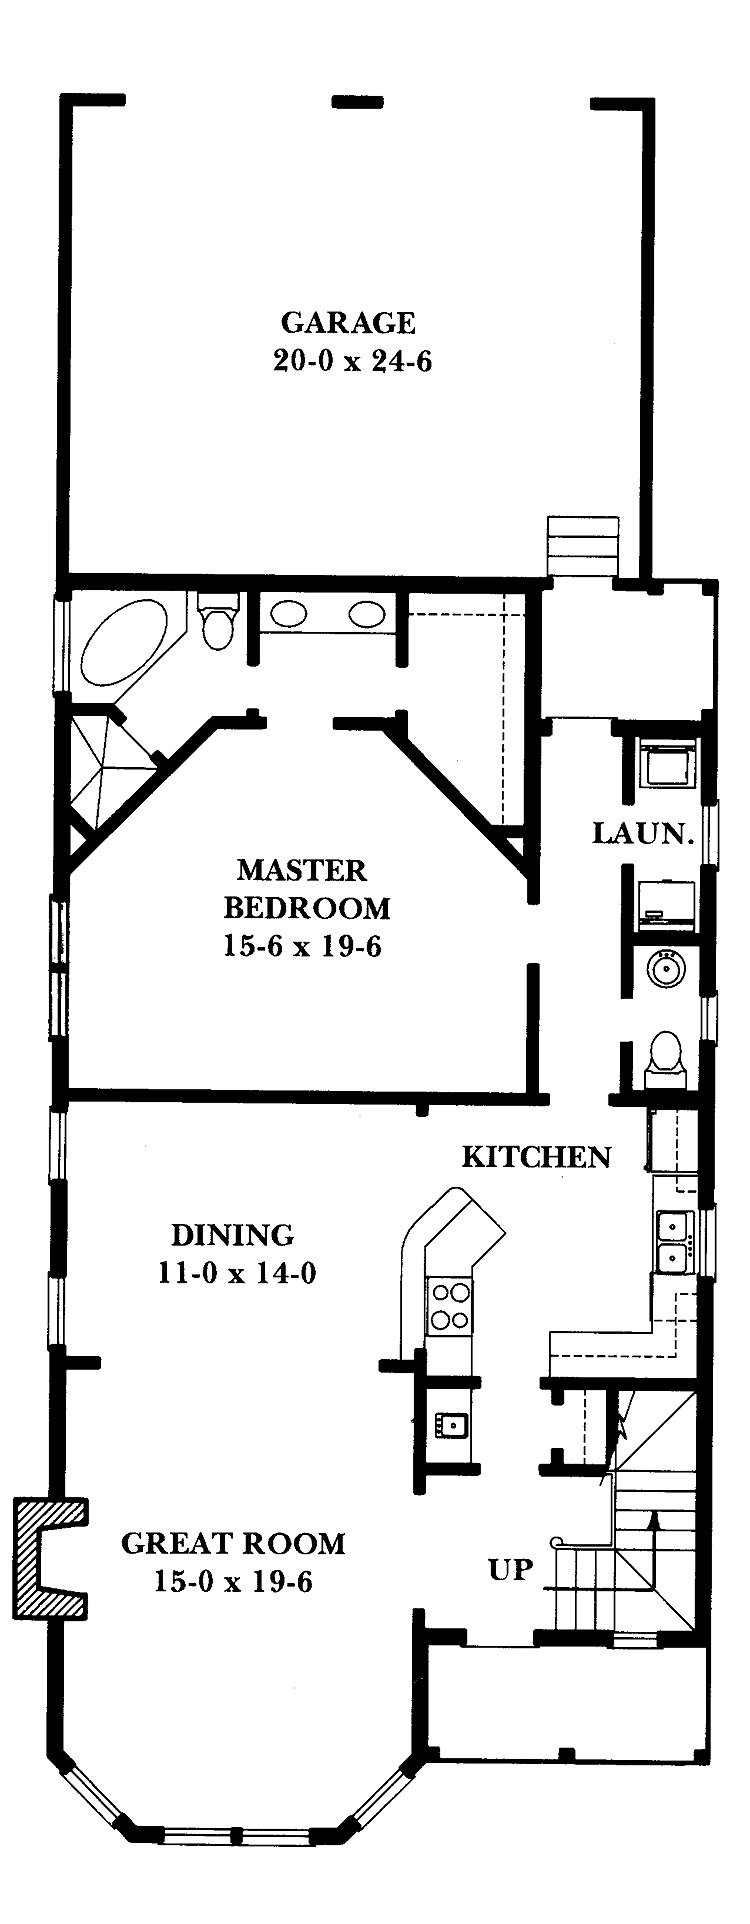 900 sq ft architecture builder house plans designs small size and picture delectable builder house plans - House Plans 700 Sq Ft Dimensions